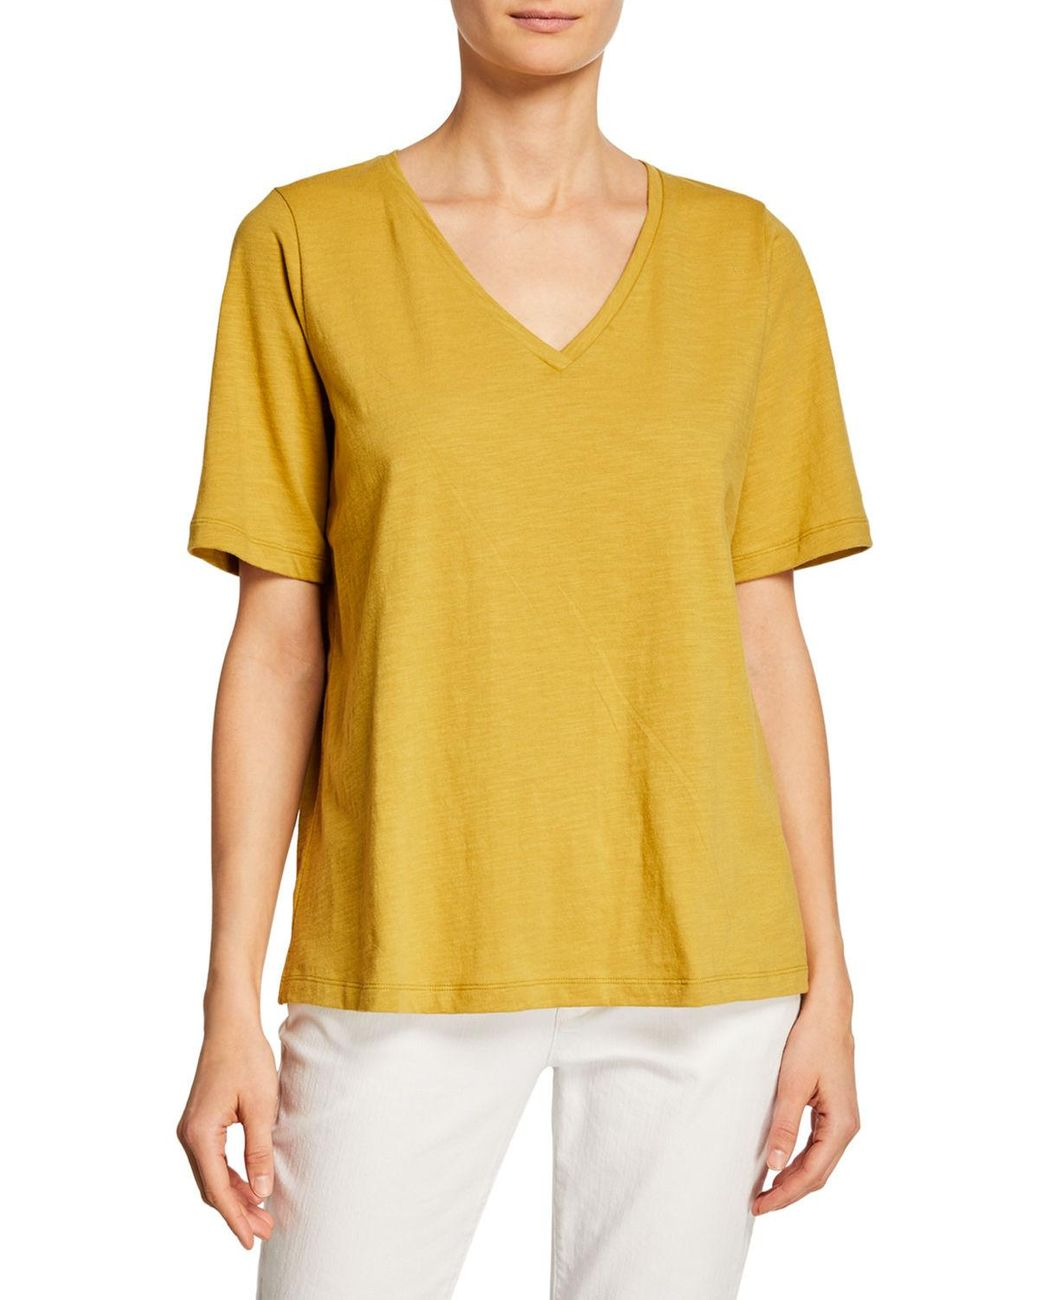 Eileen Fisher River Organic Cotton Jersey V Neck Short Sleeve Tee XS New